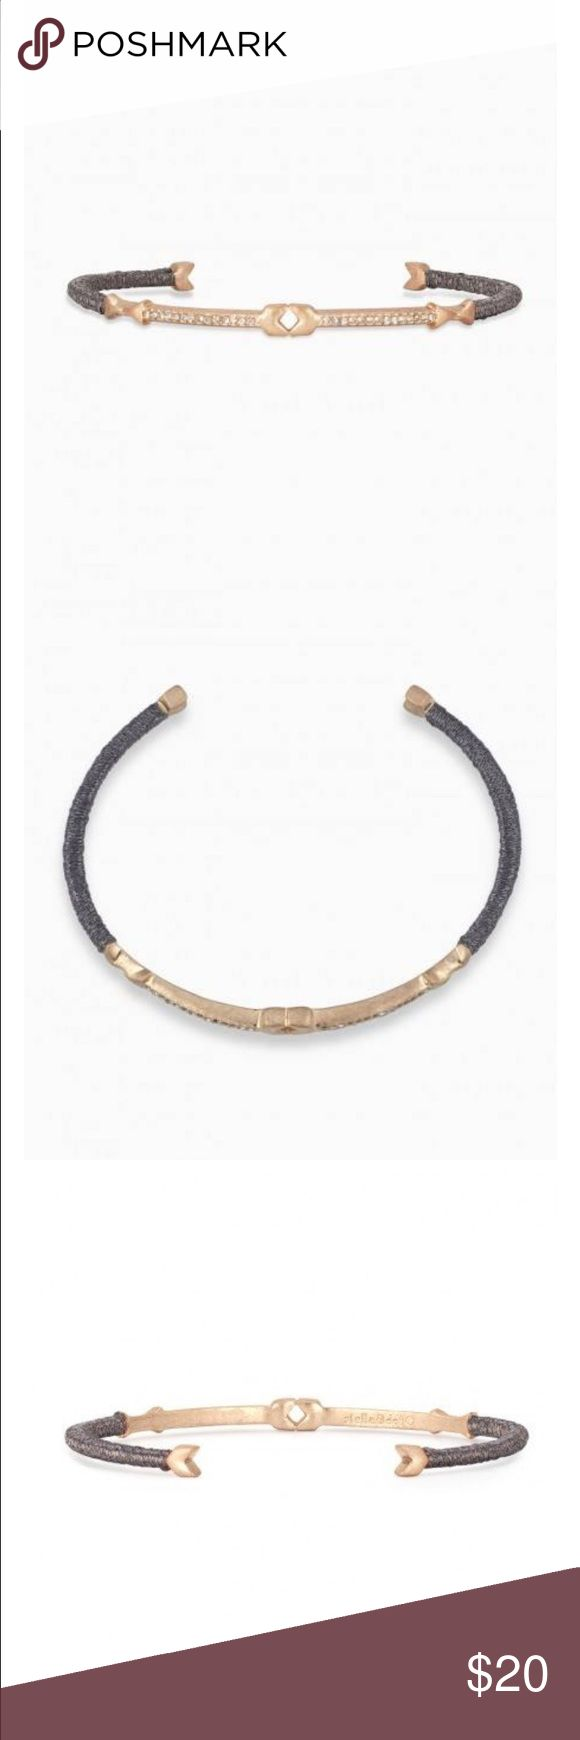 Beautiful Resilience cuff Stella and Dot bracelet Rose gold, silver silky wrap and micro pave stones. Love this bracelet! Stella & Dot Jewelry Bracelets